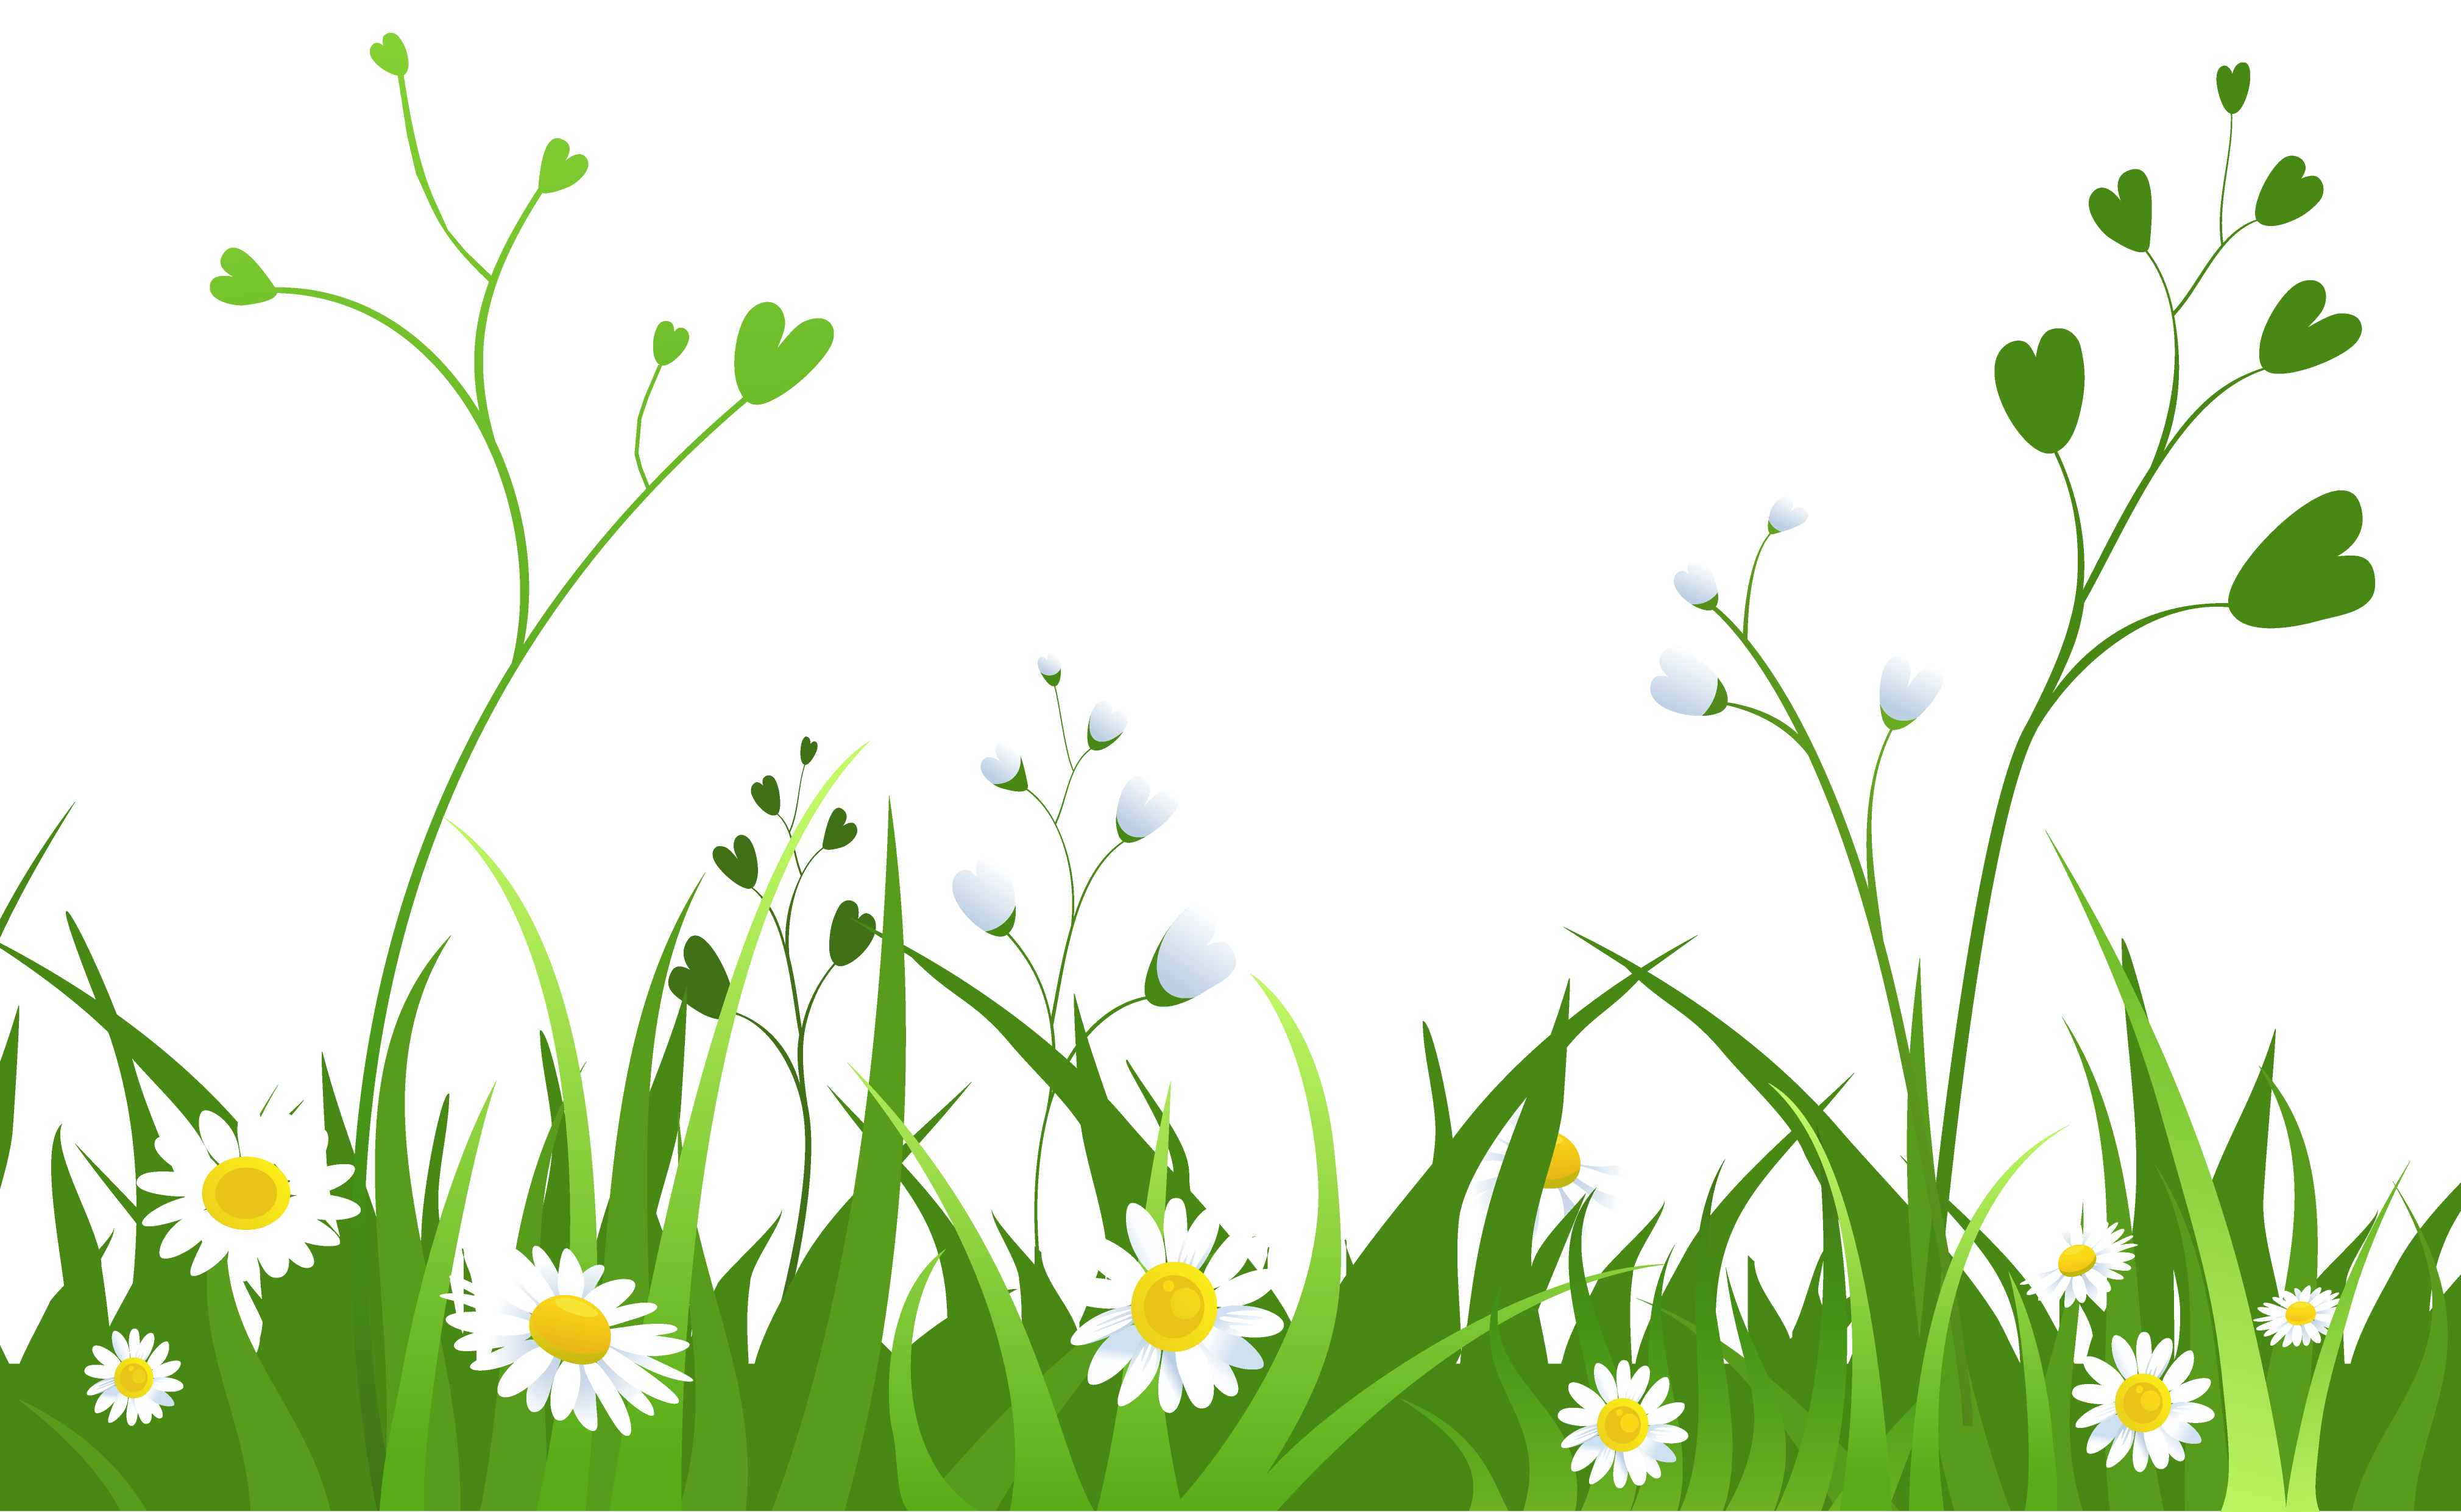 Daisies with grass png. Gardening clipart beautiful surroundings